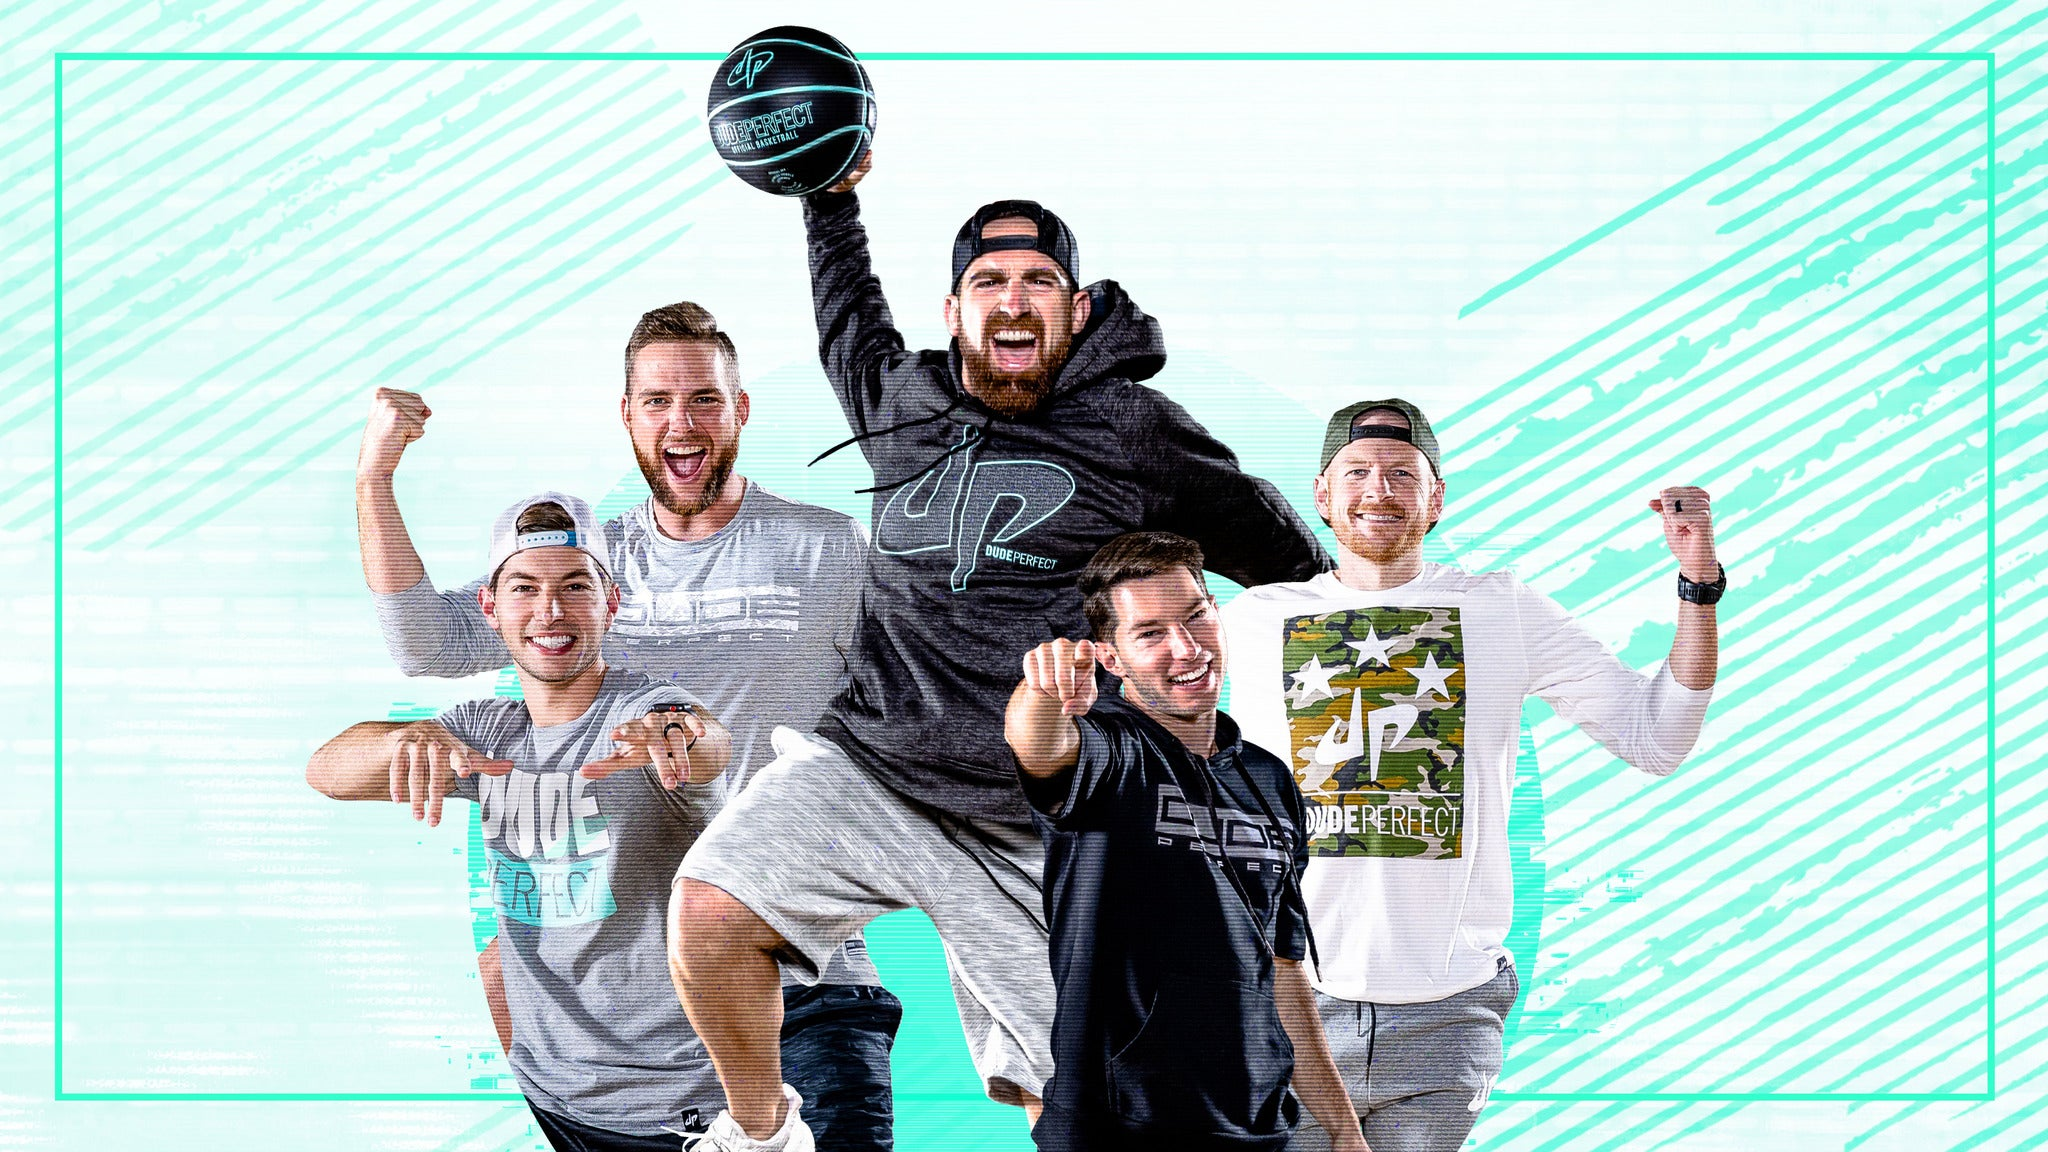 The Dude Perfect Pound It Noggin Tour